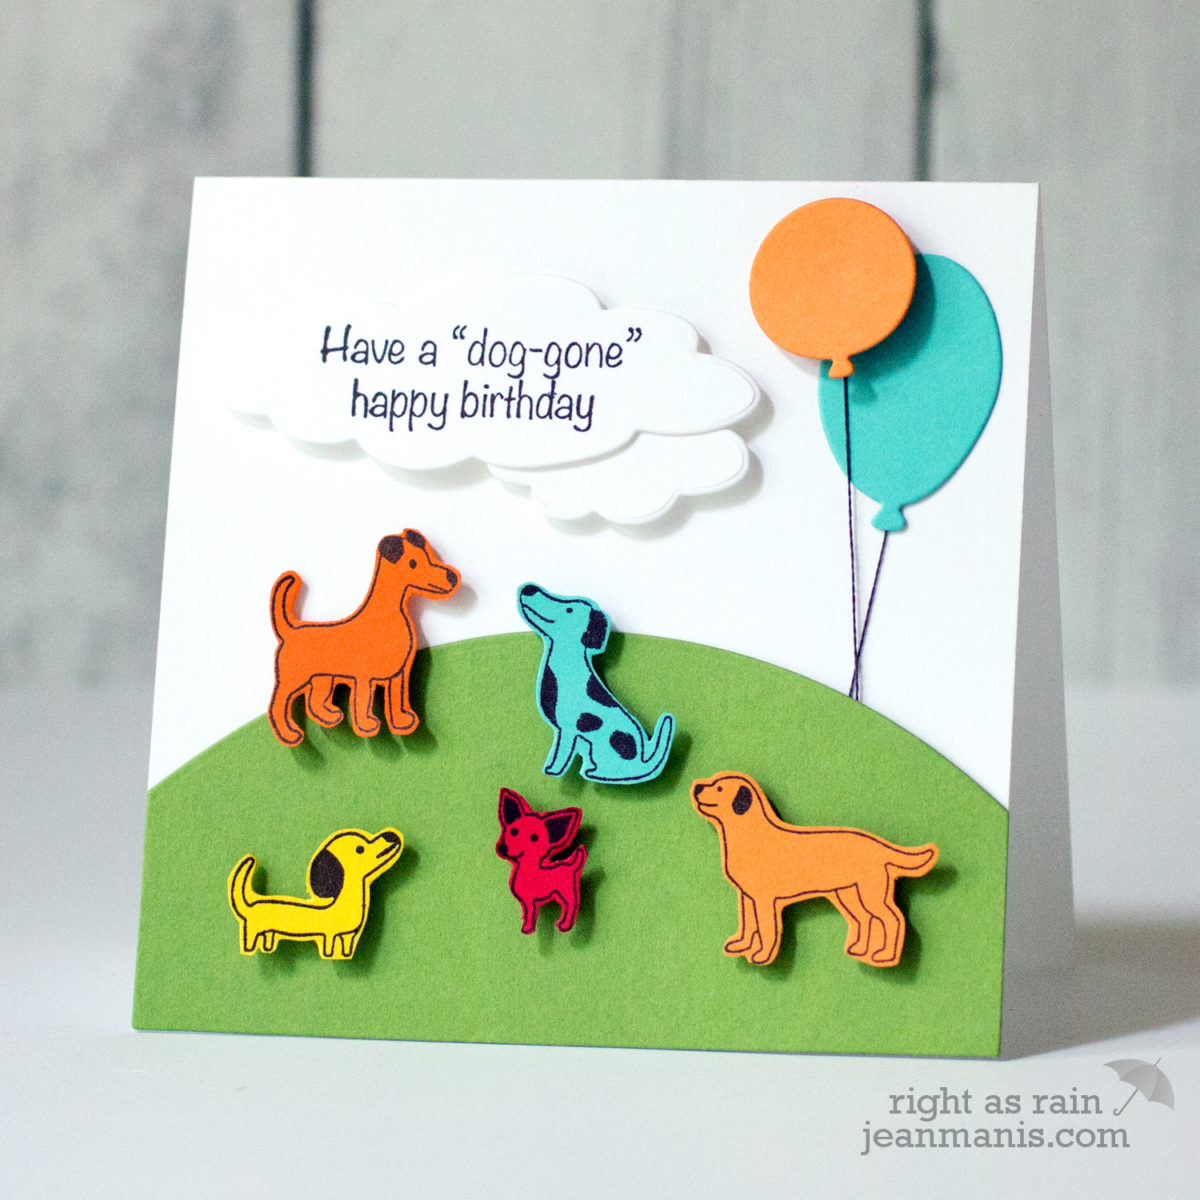 It's a Dog Party! – Penny Black Simplicity